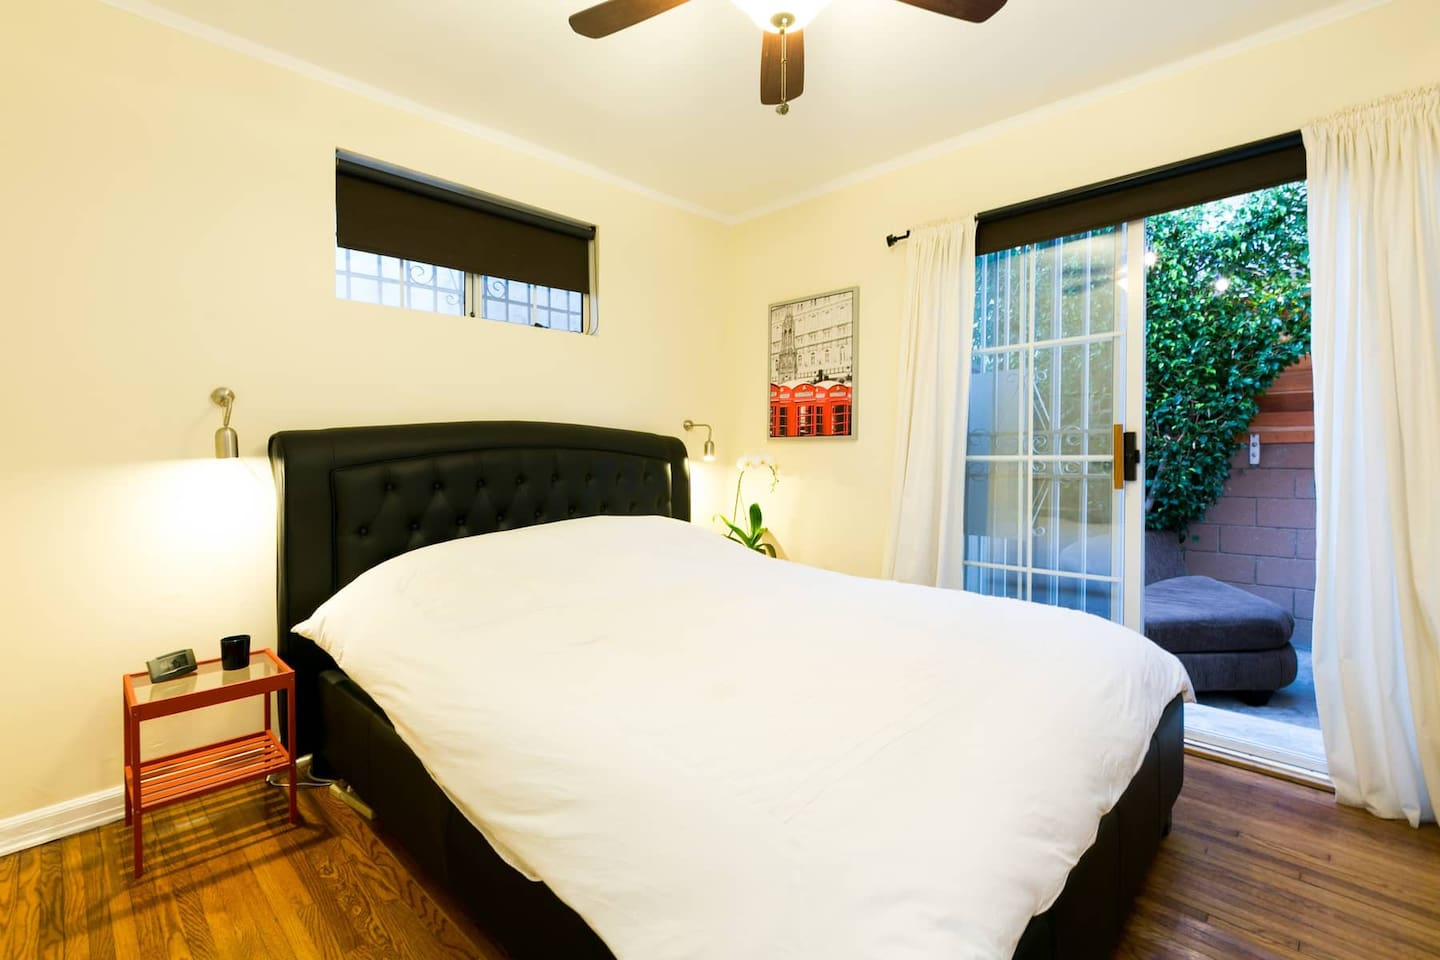 Comfortable & cozy, with outdoor patio, private bathroom, and full kitchen shared use.